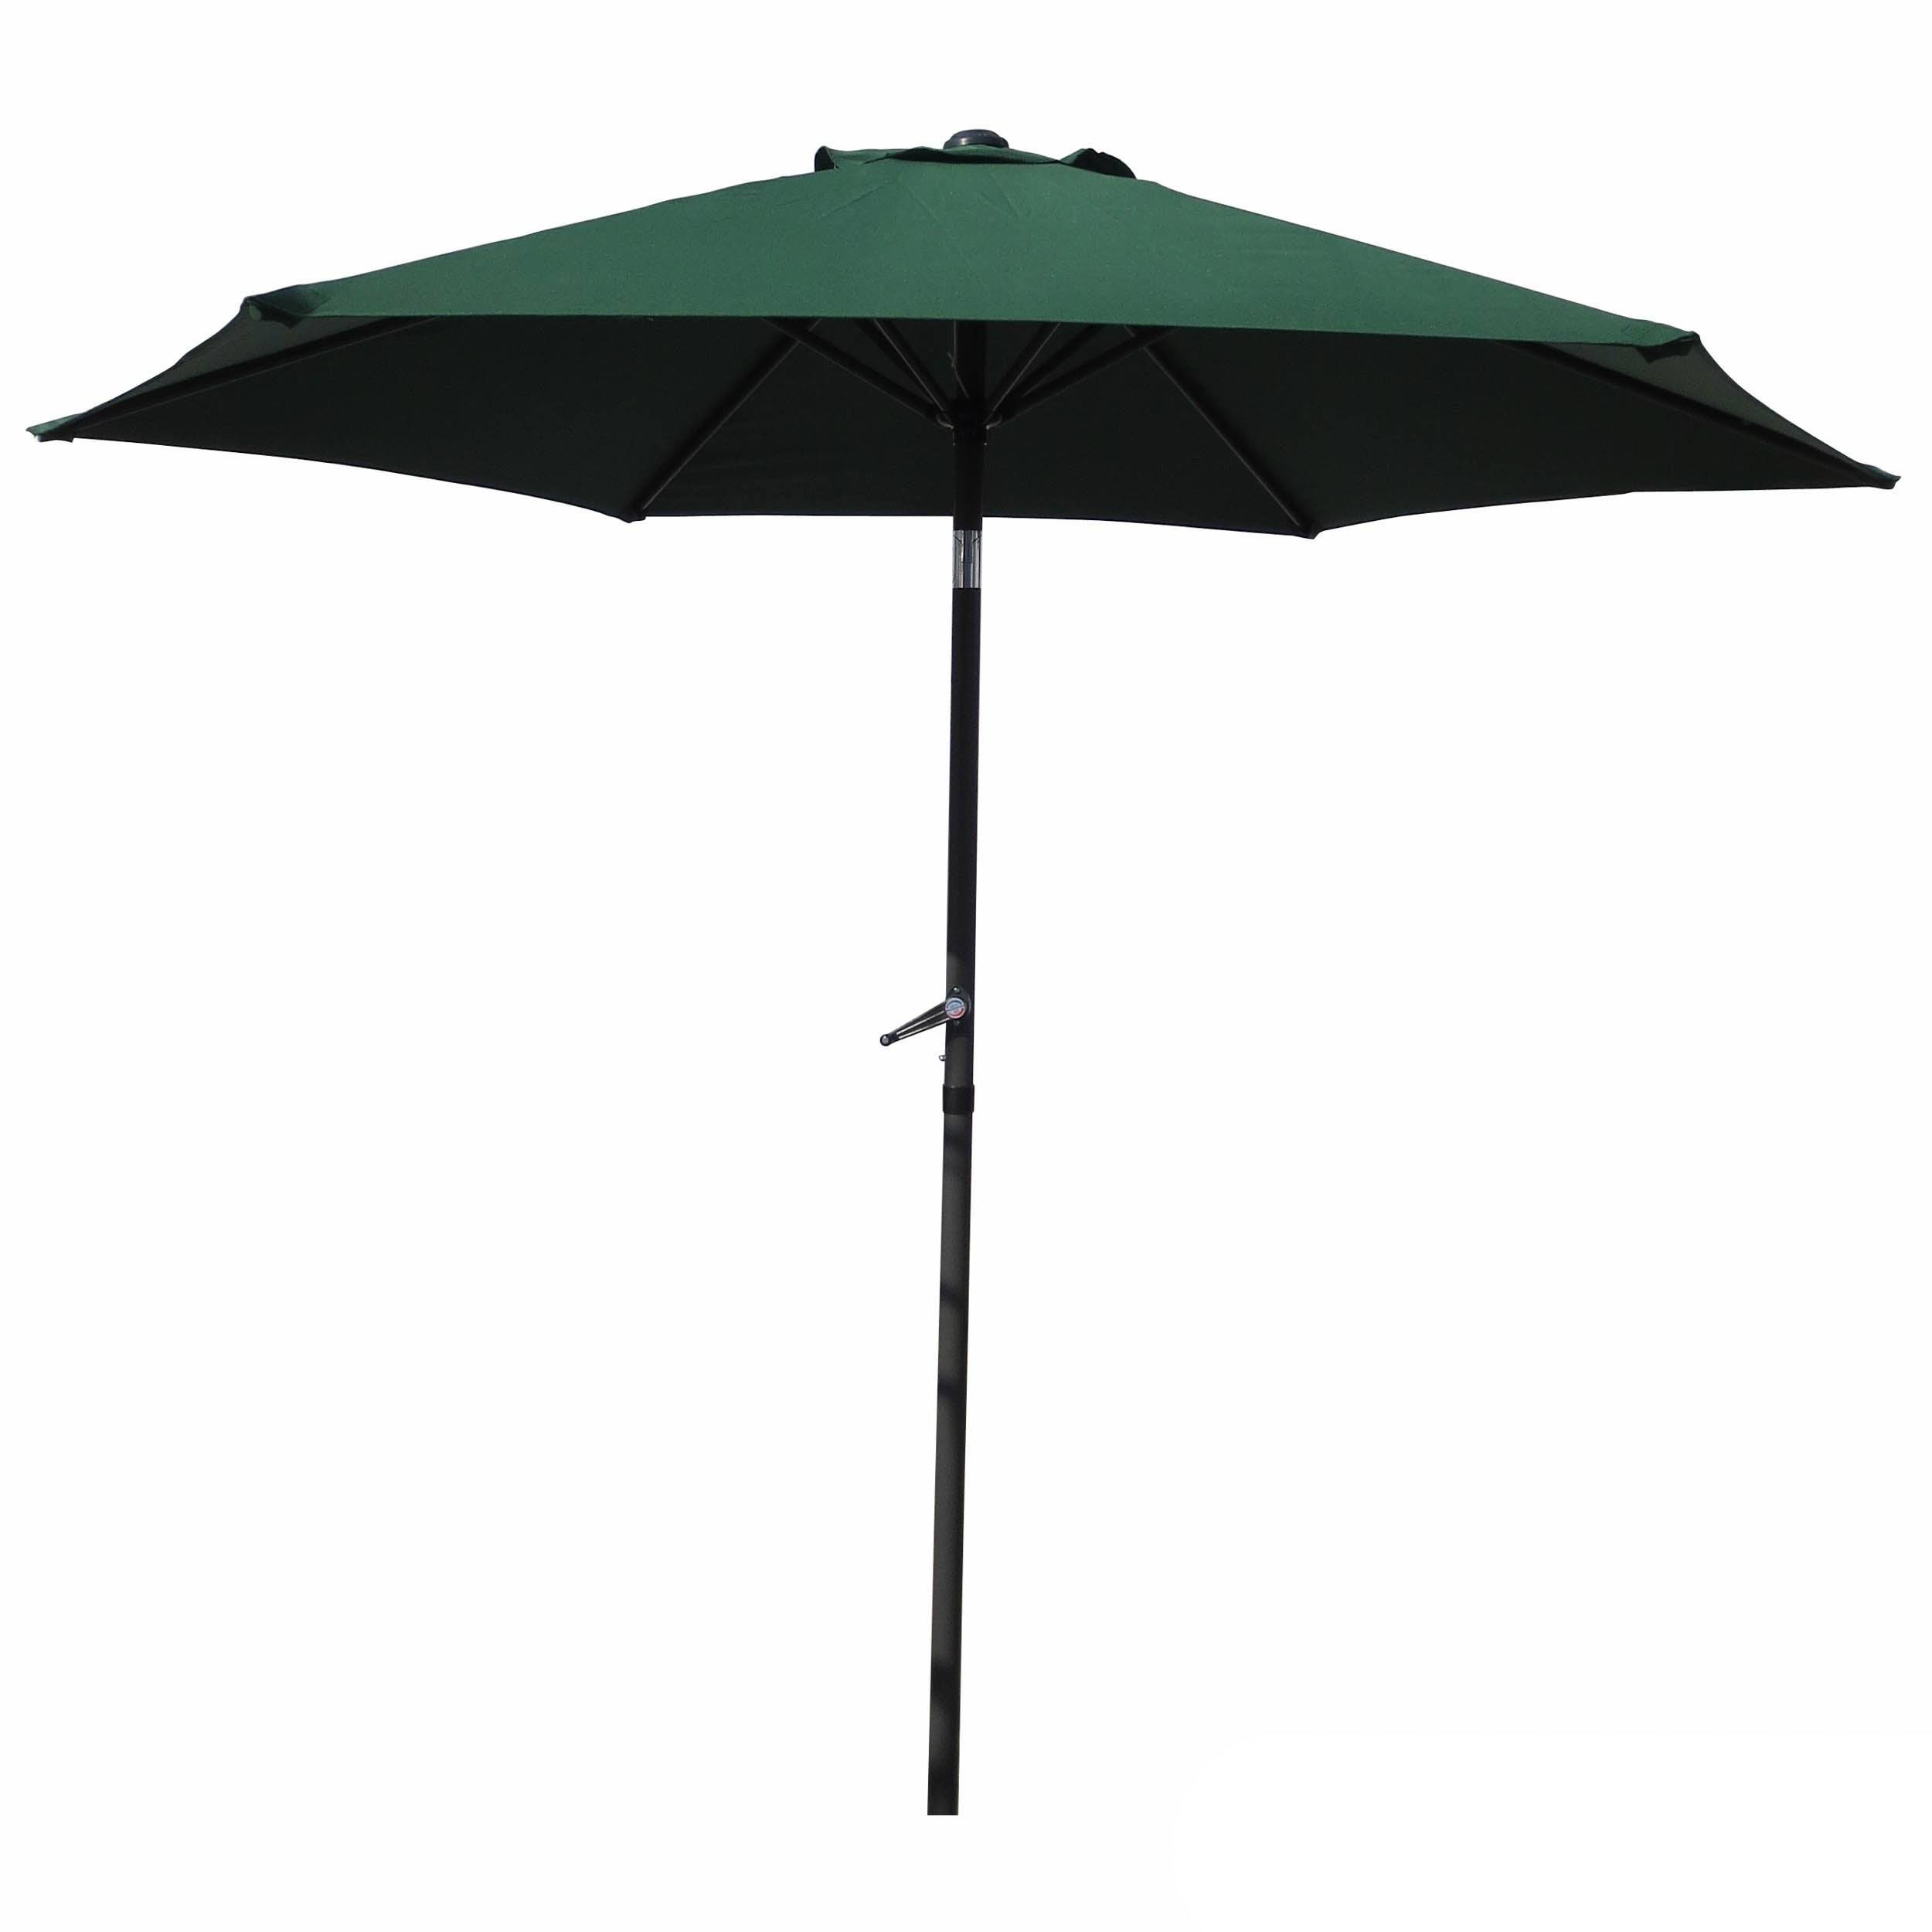 Patio Umbrella 8 foot Free Shipping Today Overstock